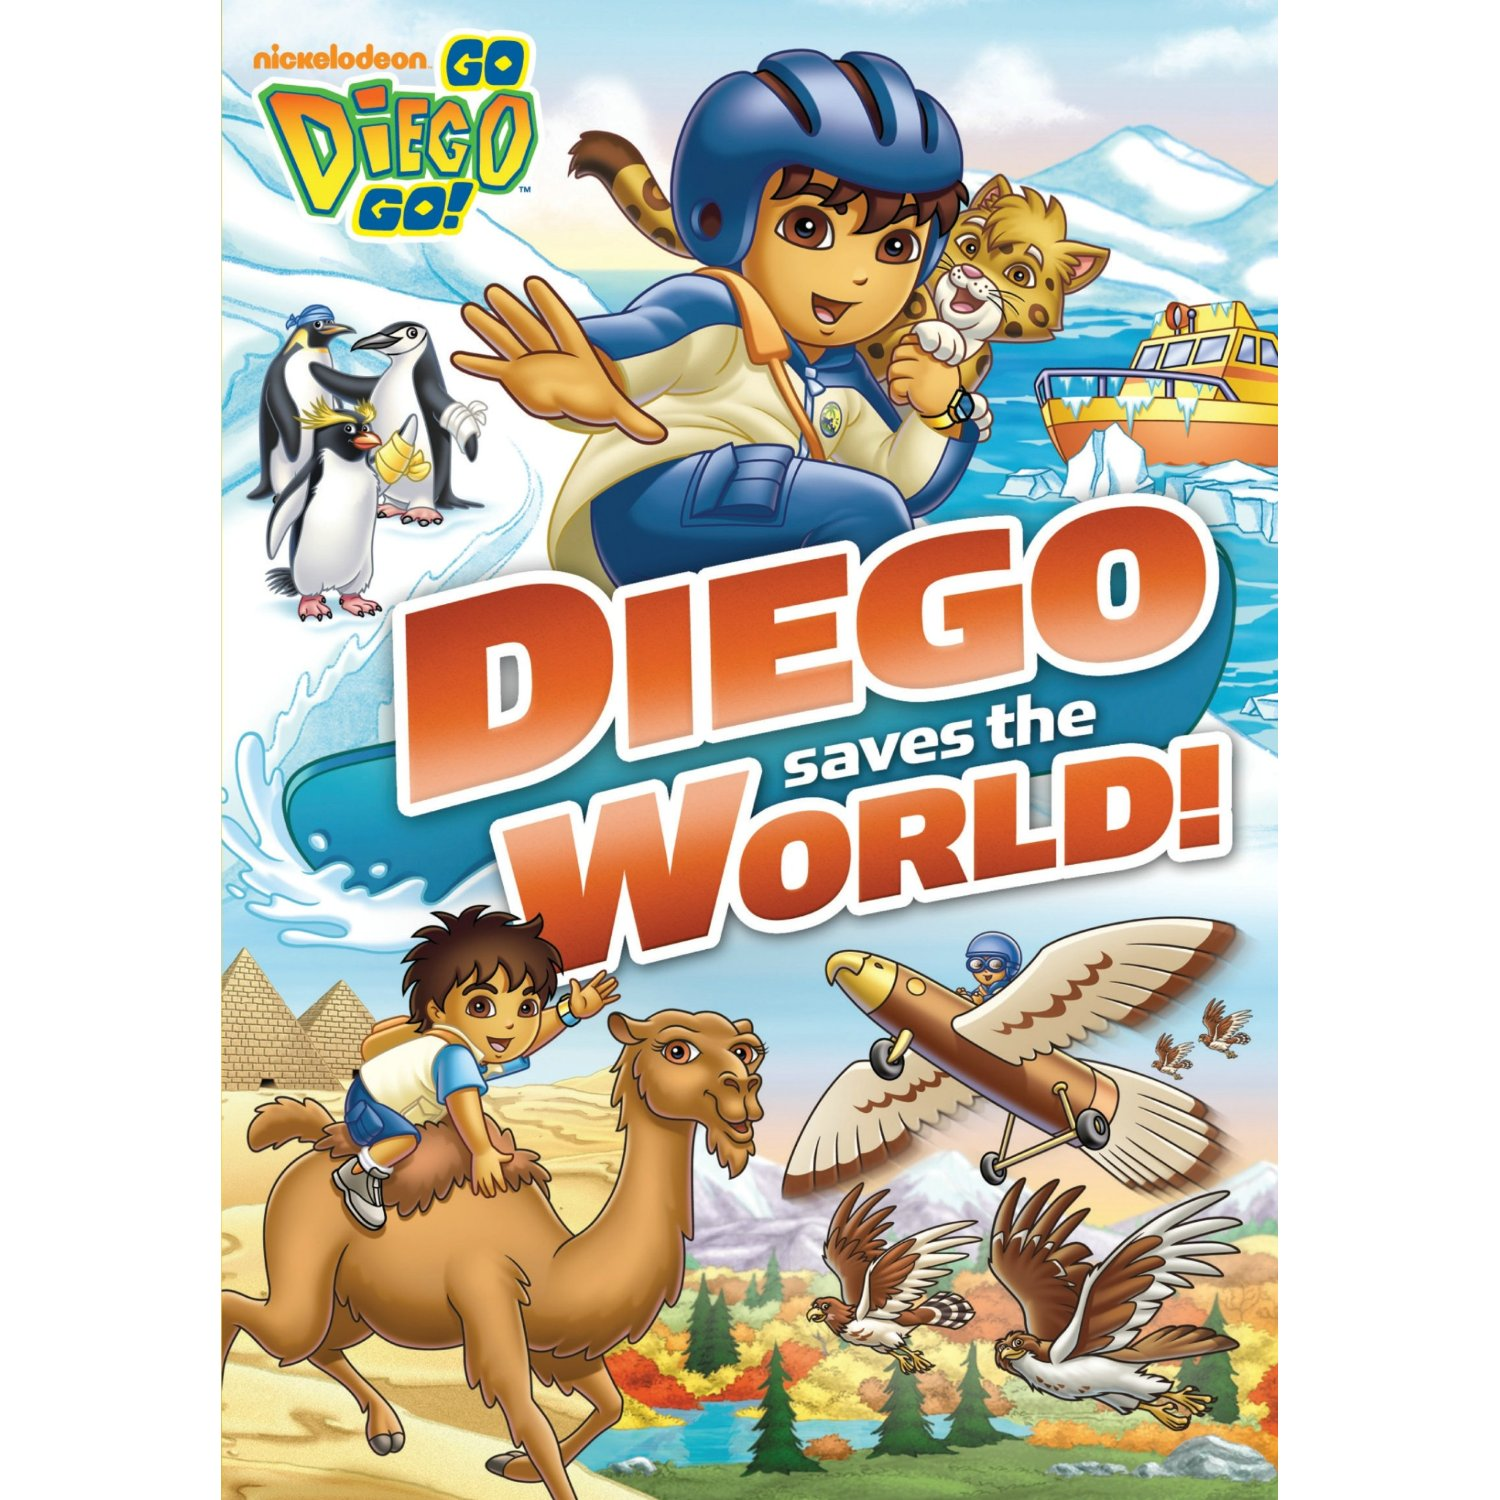 Go Diego Go! Diego Saves the World DVD review and giveaway